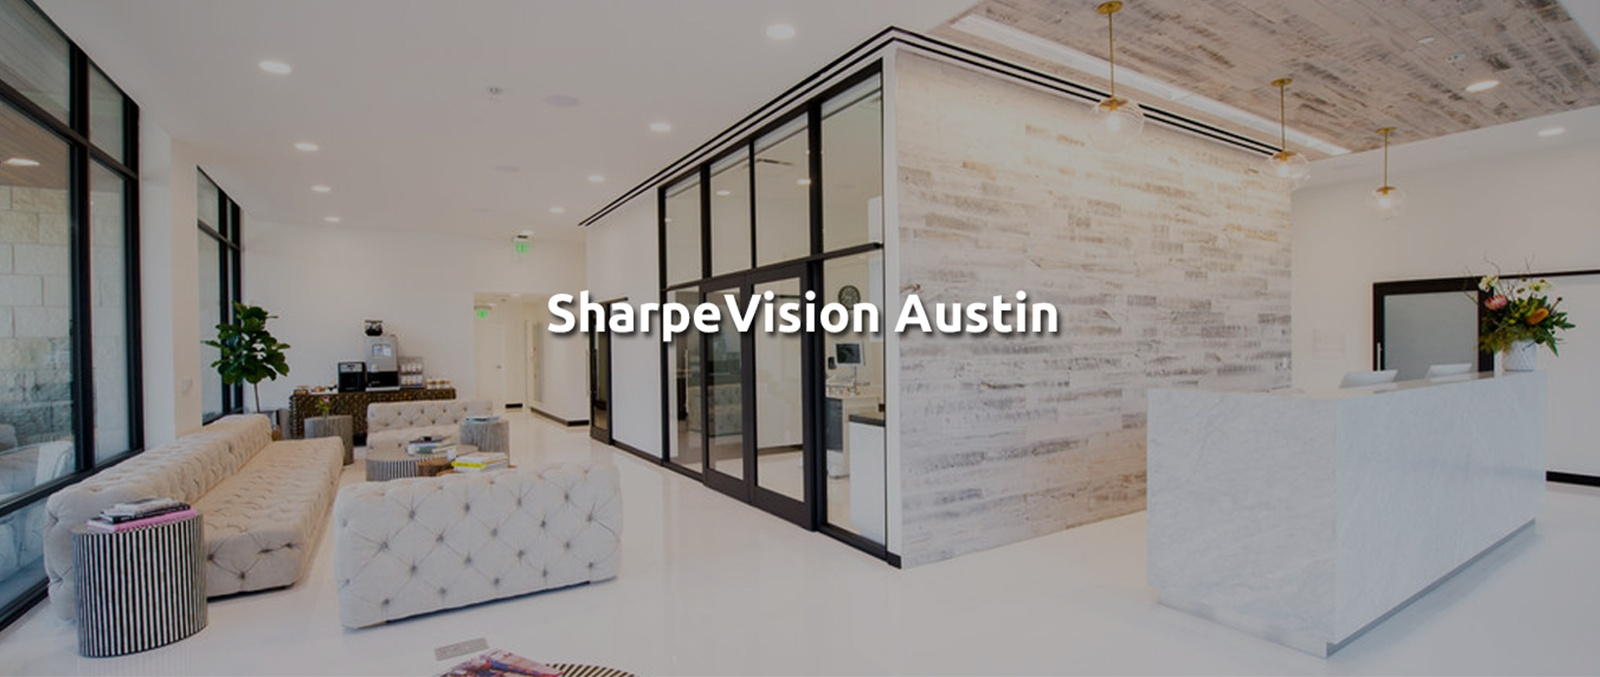 Sharpe Vision Austin - Architectural Design Plans Cleveland by redhouse studio